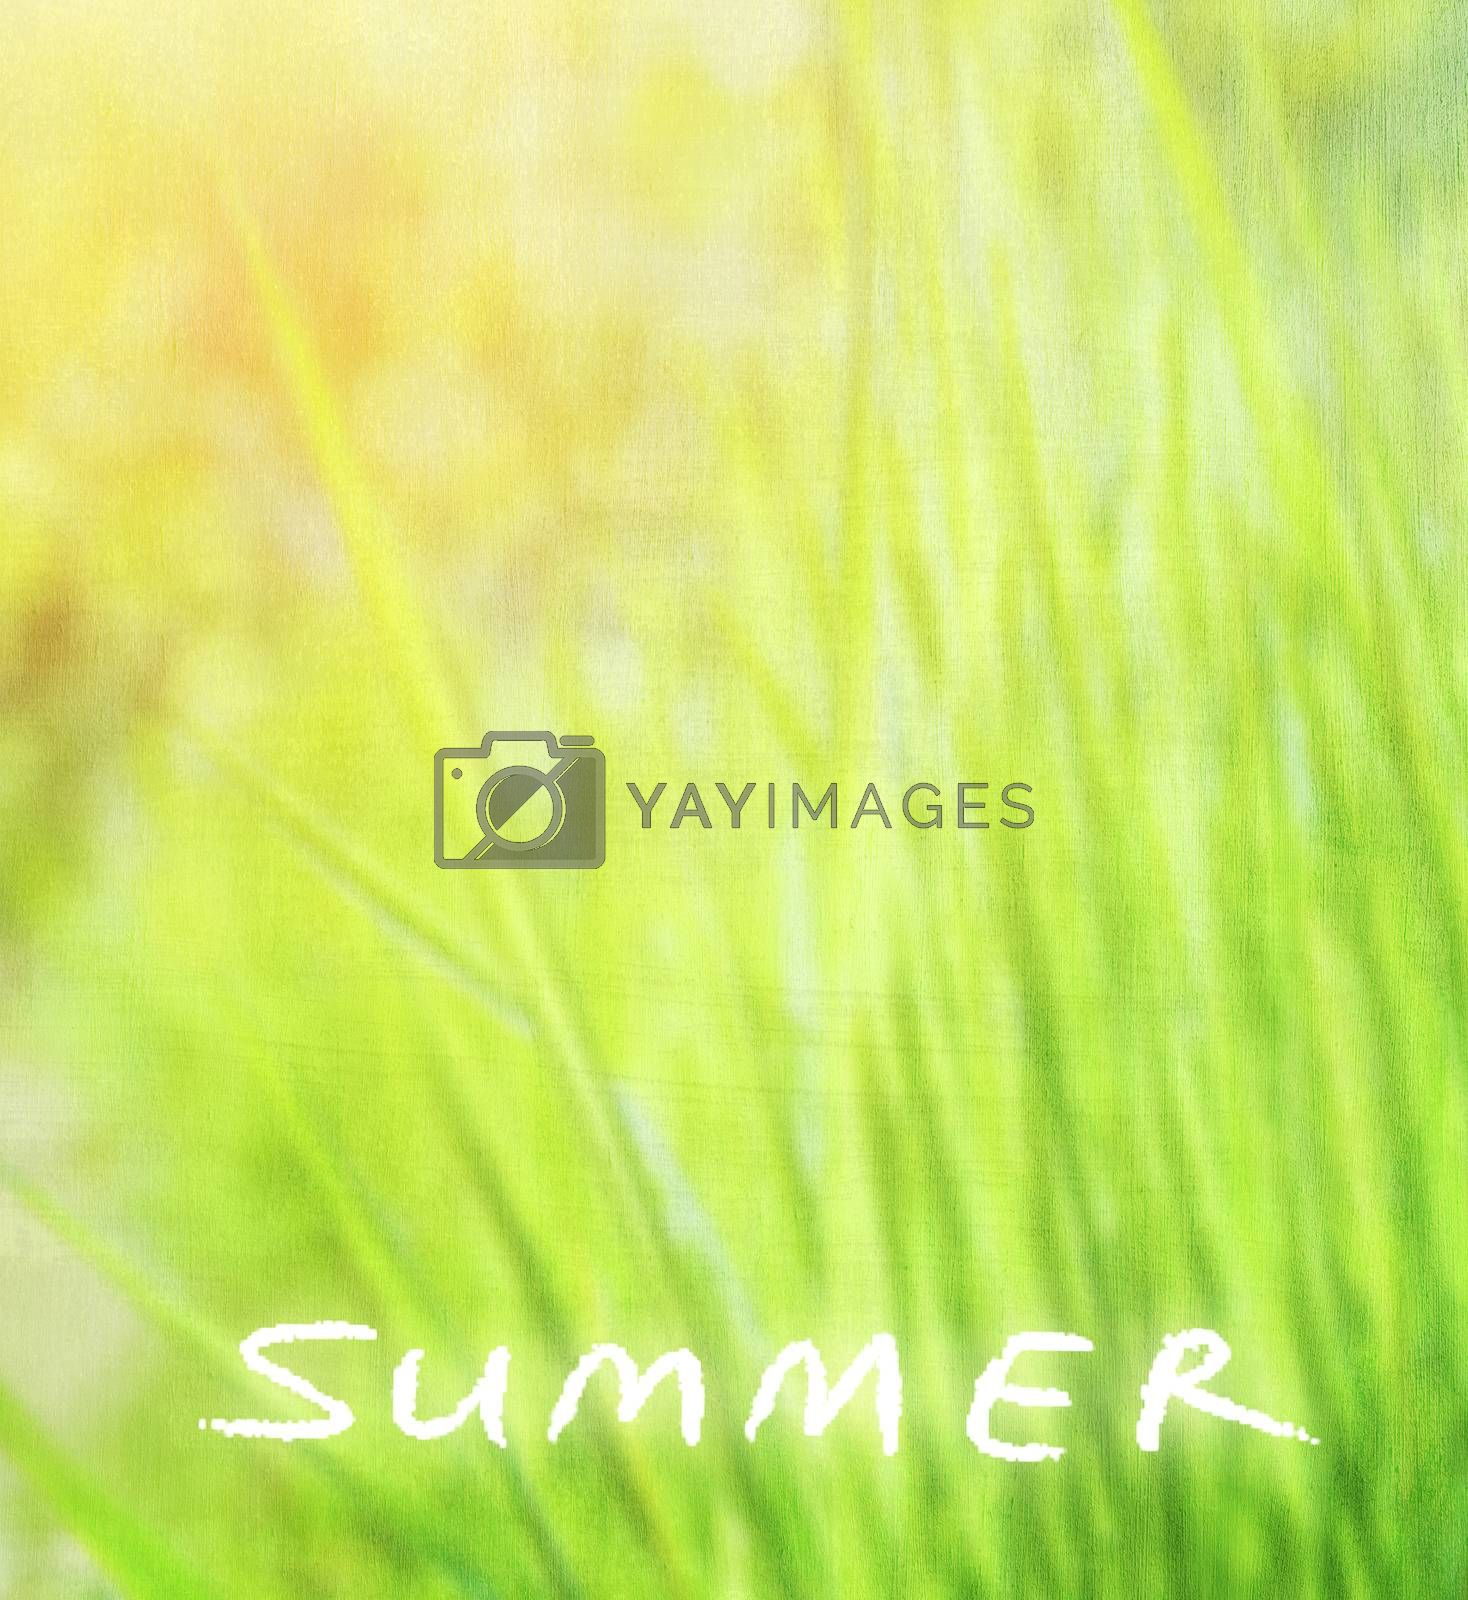 Royalty free image of Abstract natural background by Anna_Omelchenko